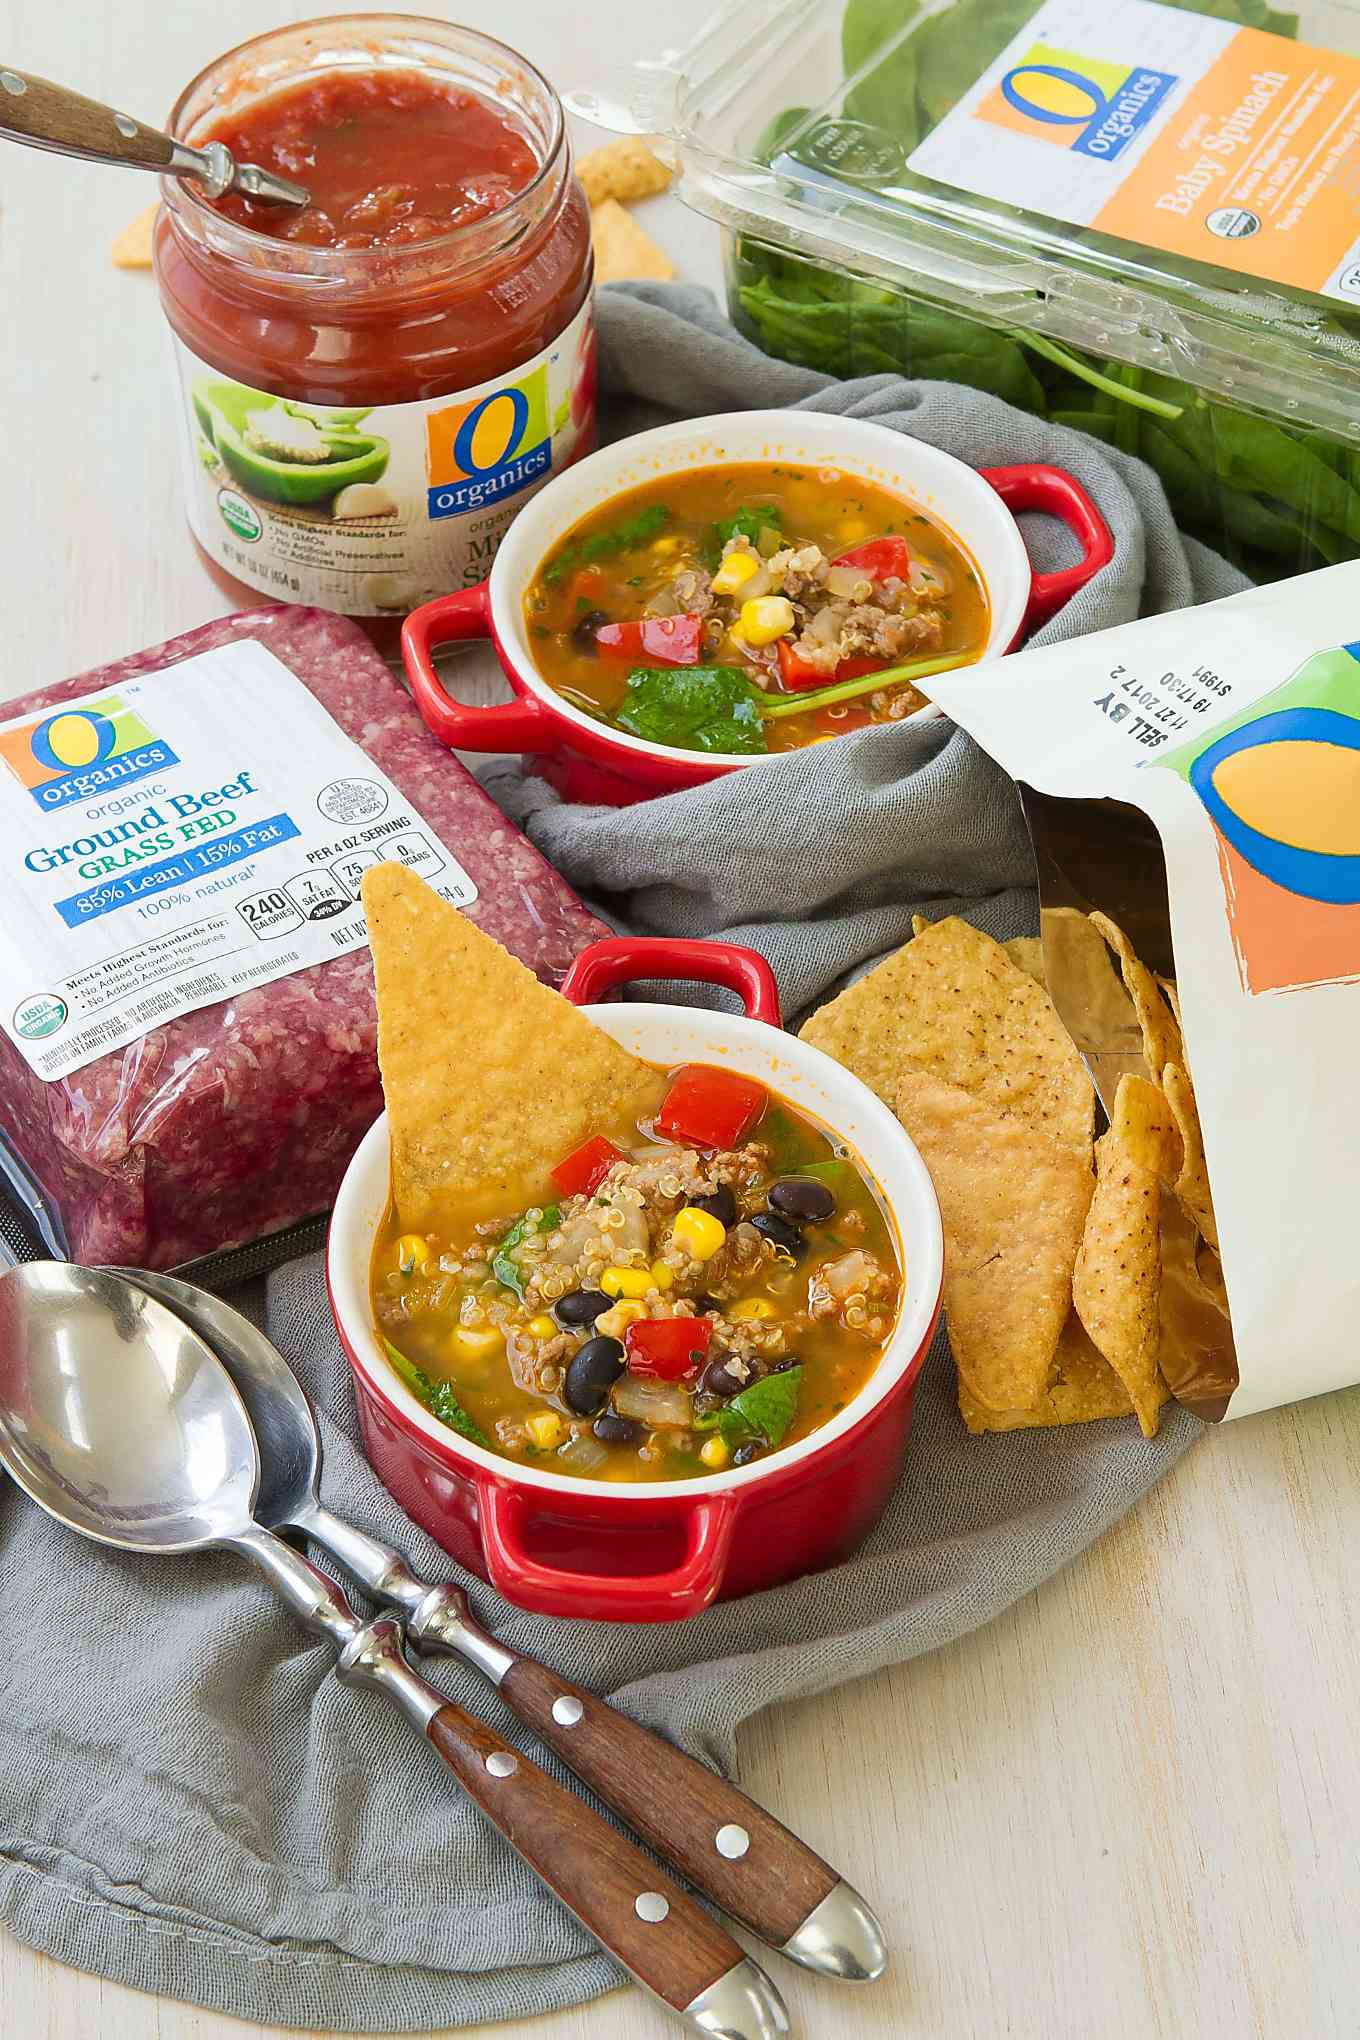 Get your dose of iron and veggies in a healthy and comforting bowl of Beef Taco Quinoa Soup. Great for loading up on vitamins in the cold and flu season. 210 calories and 4 Weight Watchers Freestyle SP